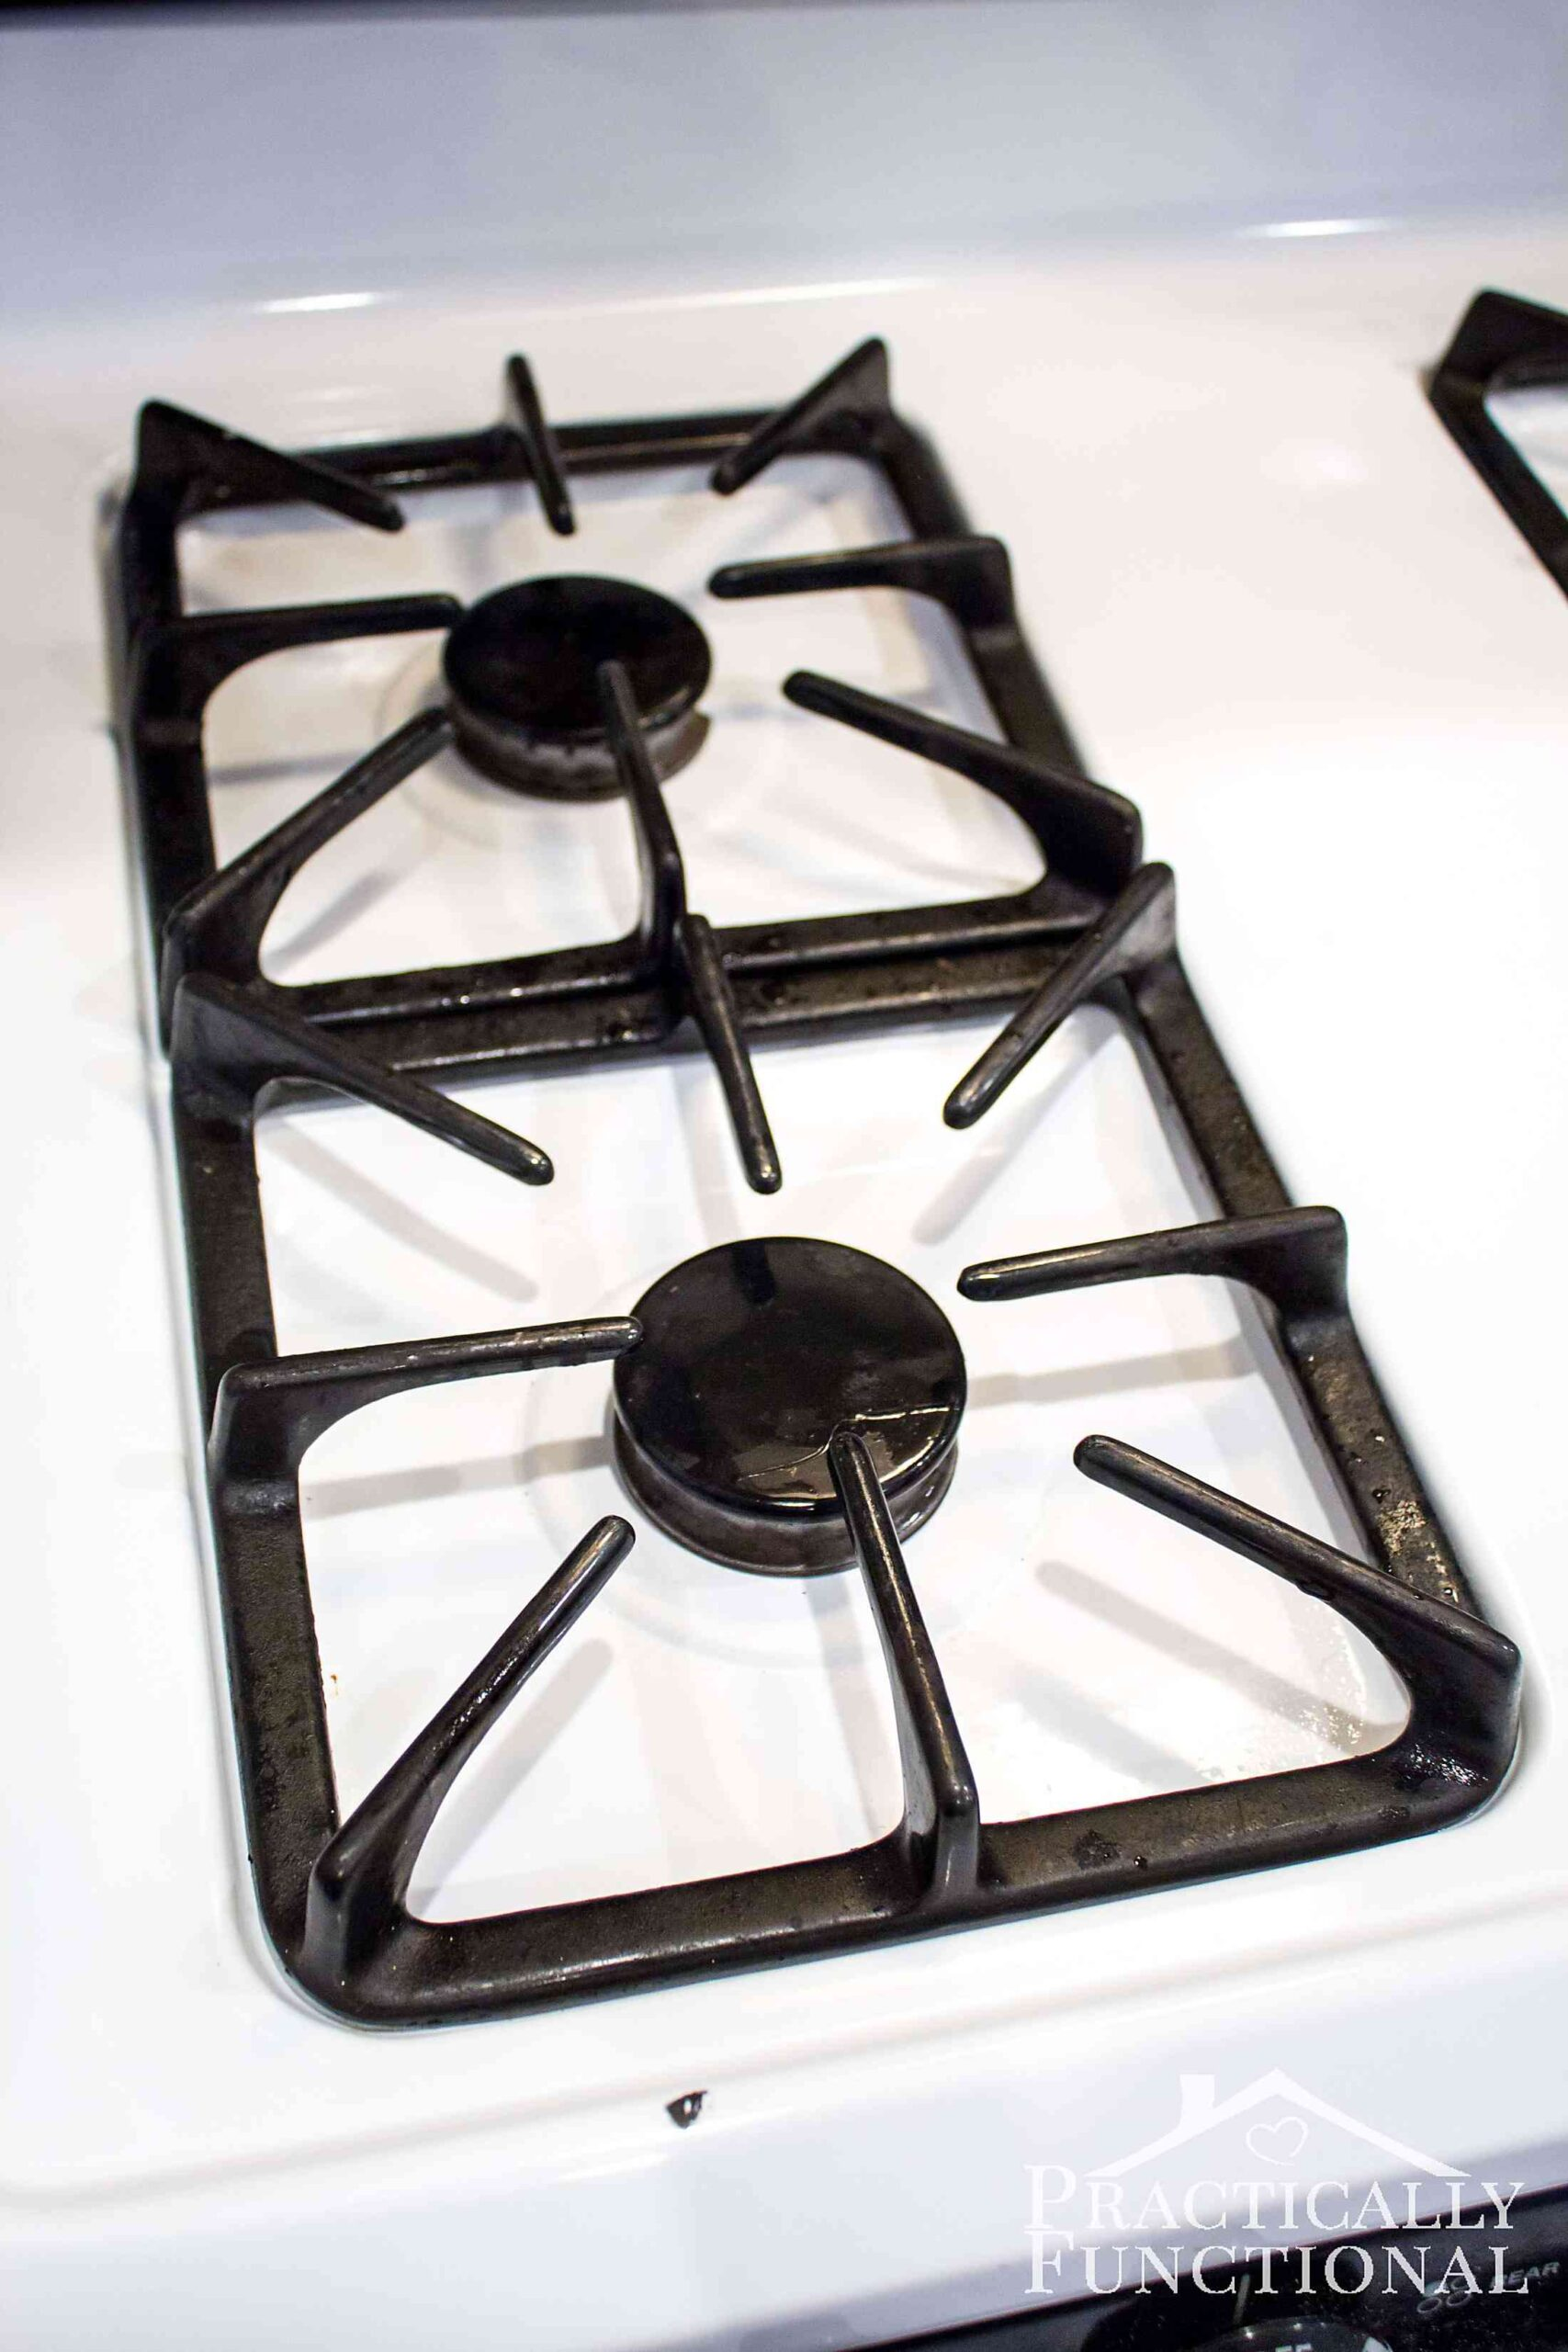 How To Really Clean A Stove Top Even All The Baked On Gunk Practically Functional